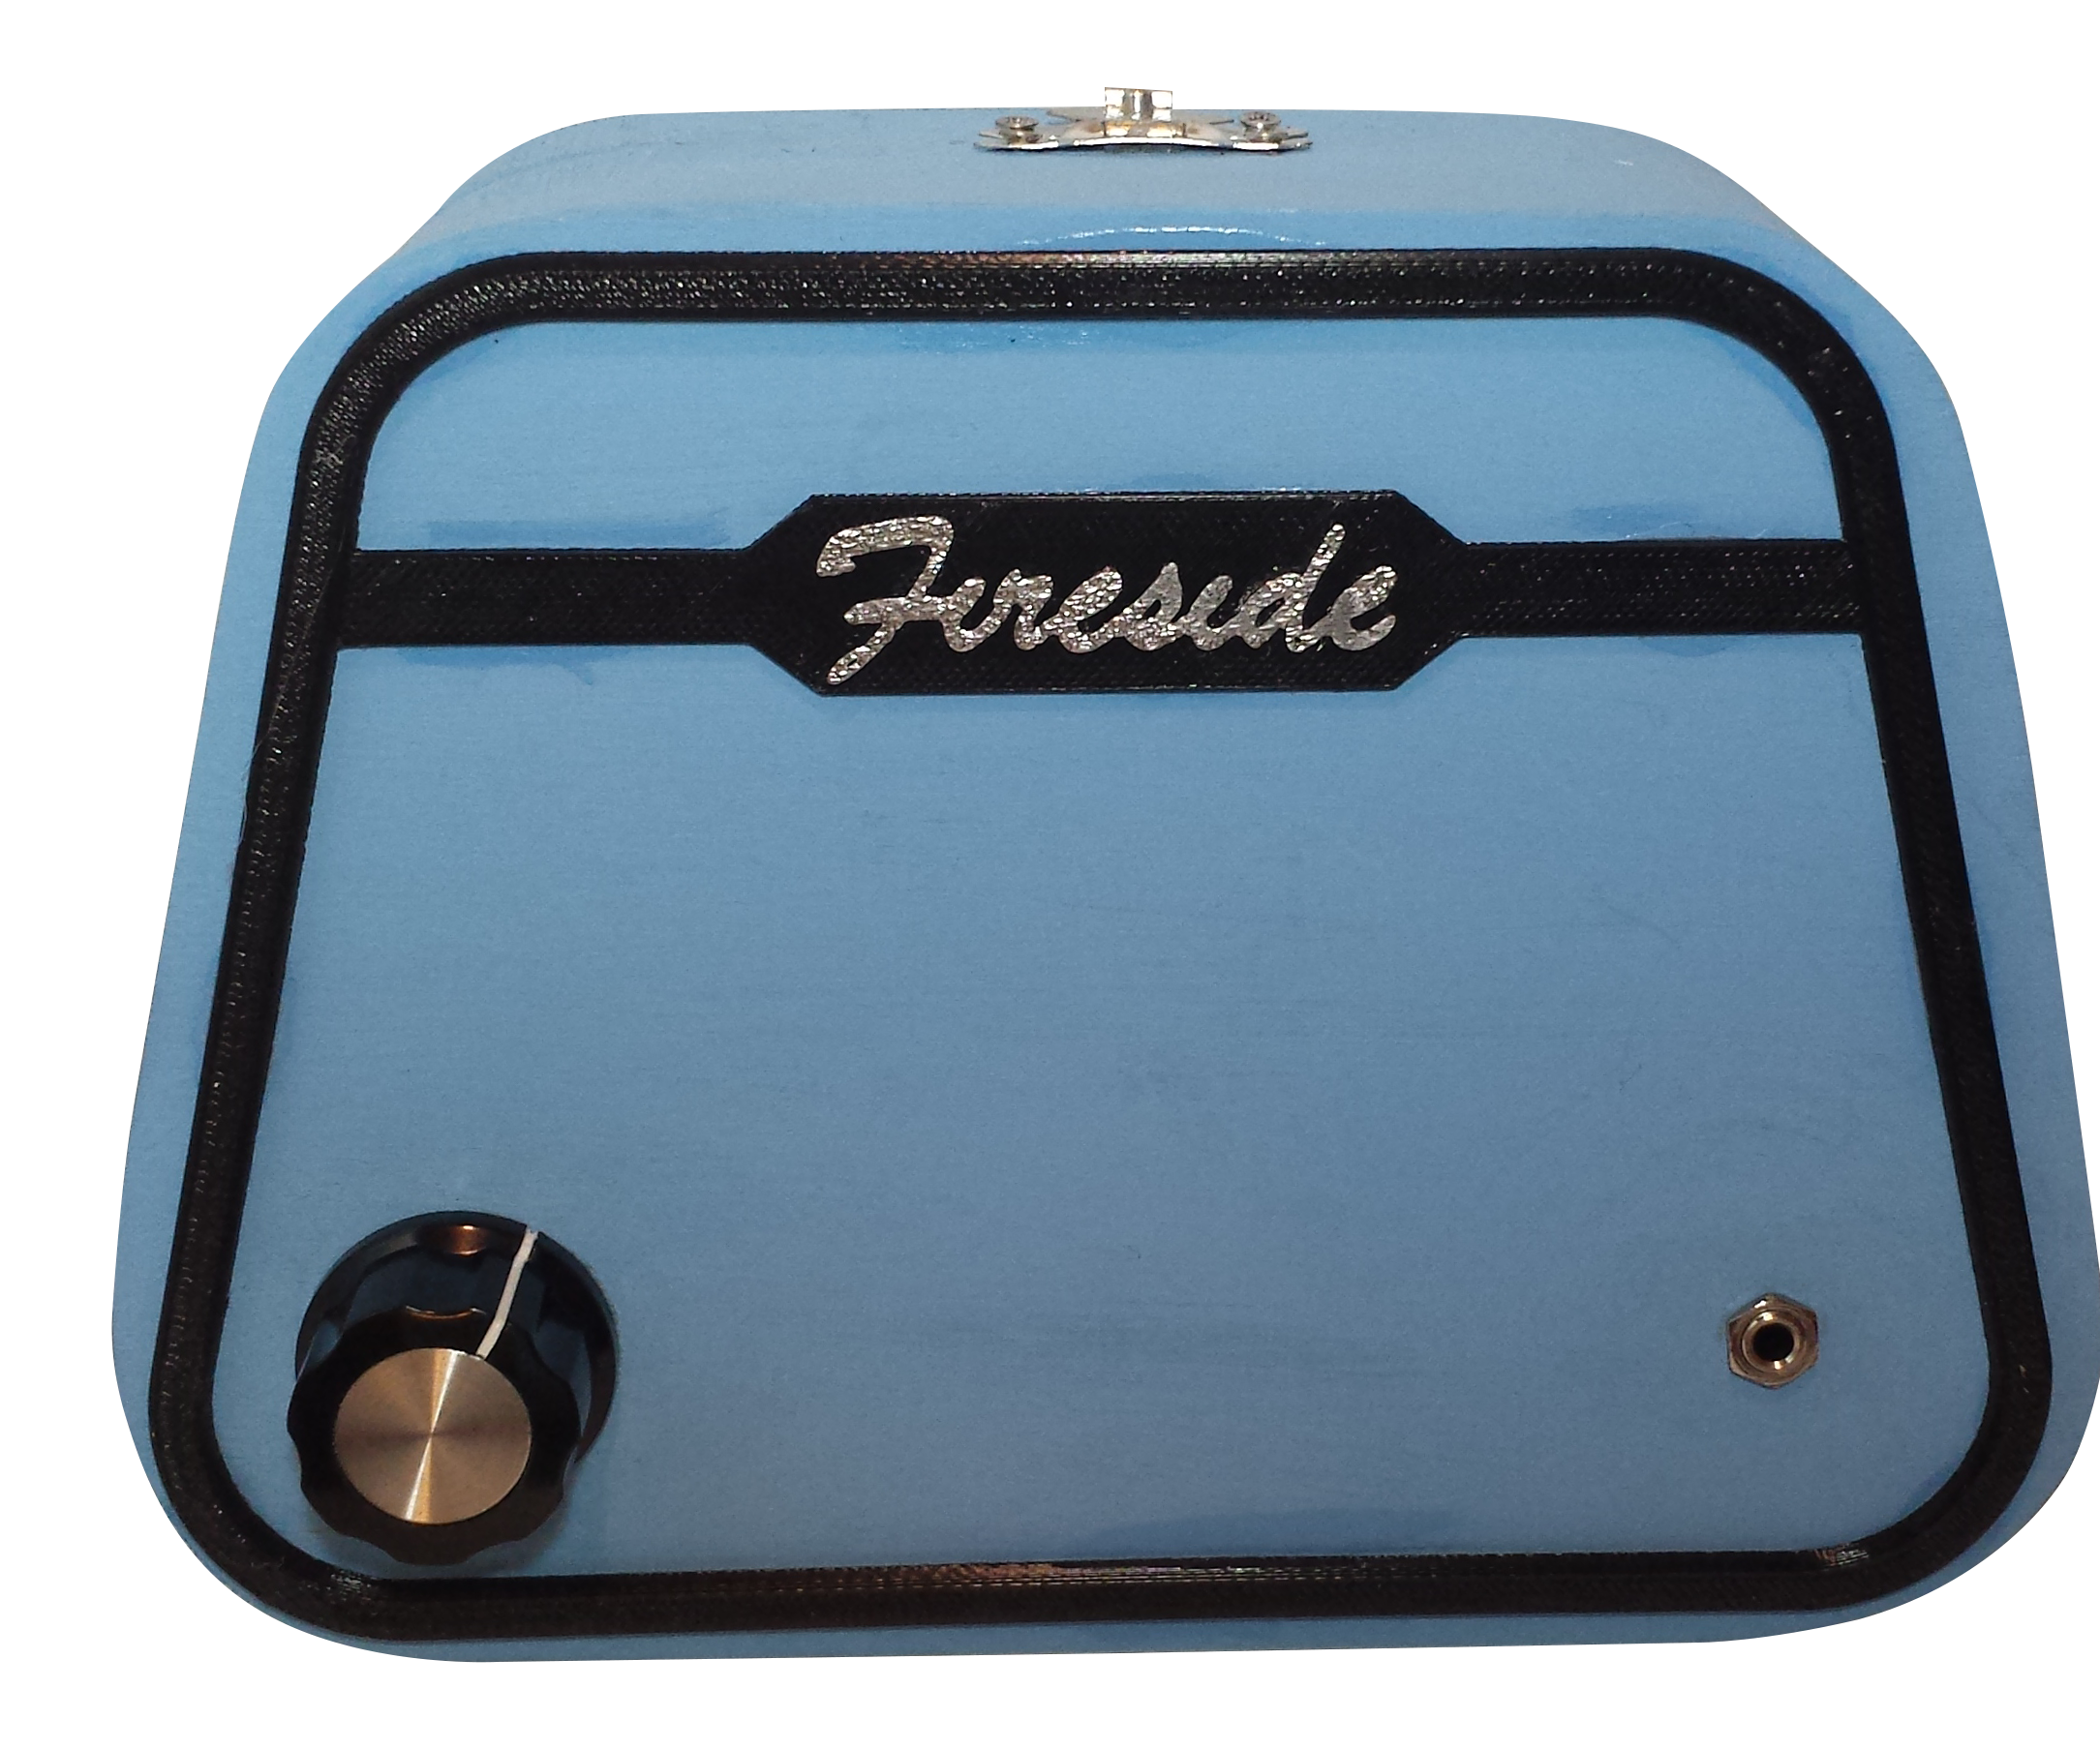 Fireside Internet Radio Player for Elderly Users - built with Raspberry Pi